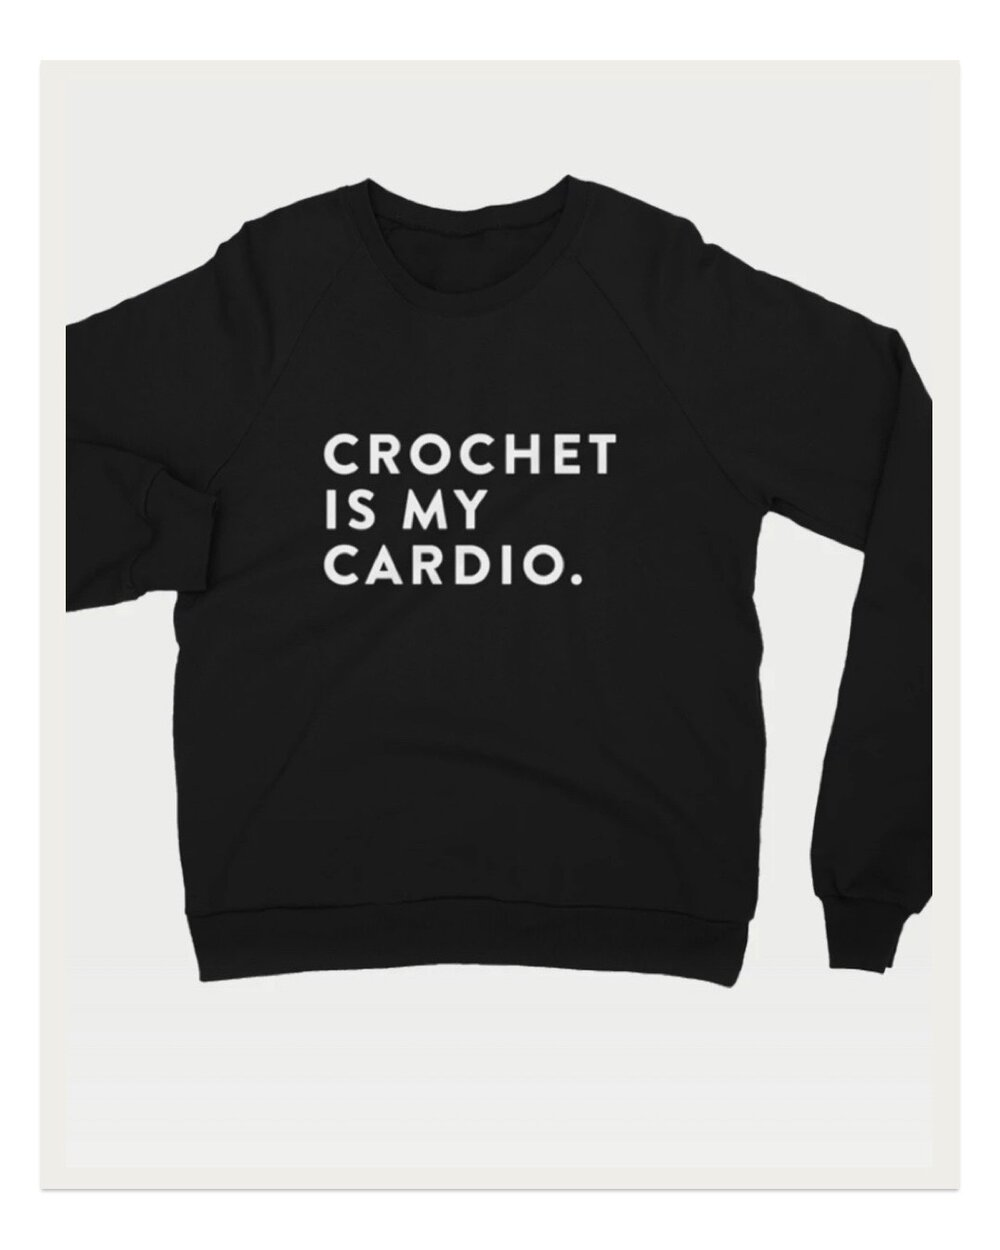 Funny because it's true! I love this cozy sweatshirt by Debrosse for days at home stitching on the couch, or for running errands / gym time if you want to put a smile on everyone's face :)